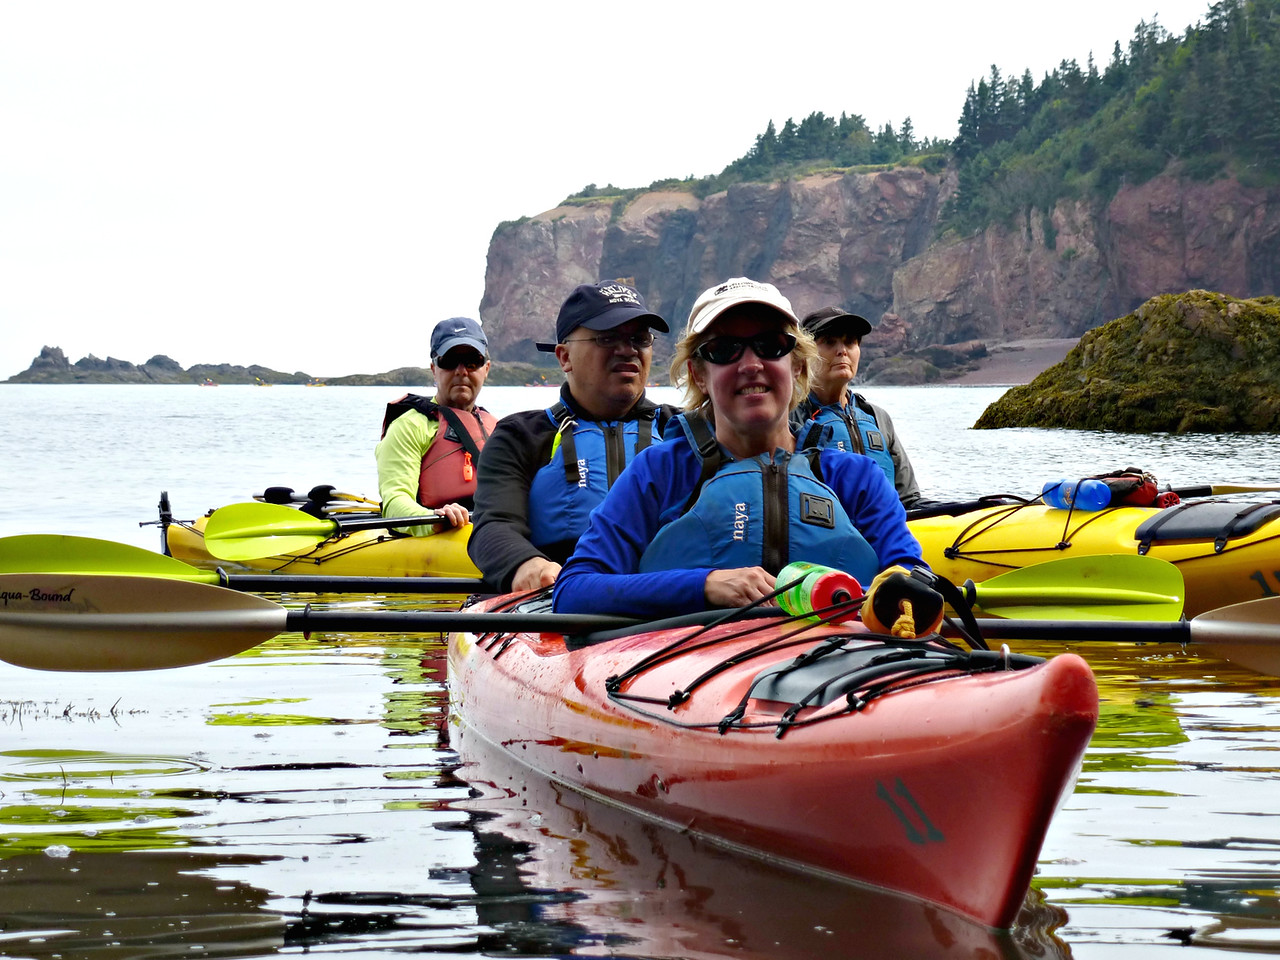 Canada: Nova Scotia Fundy and Glooscap Hike